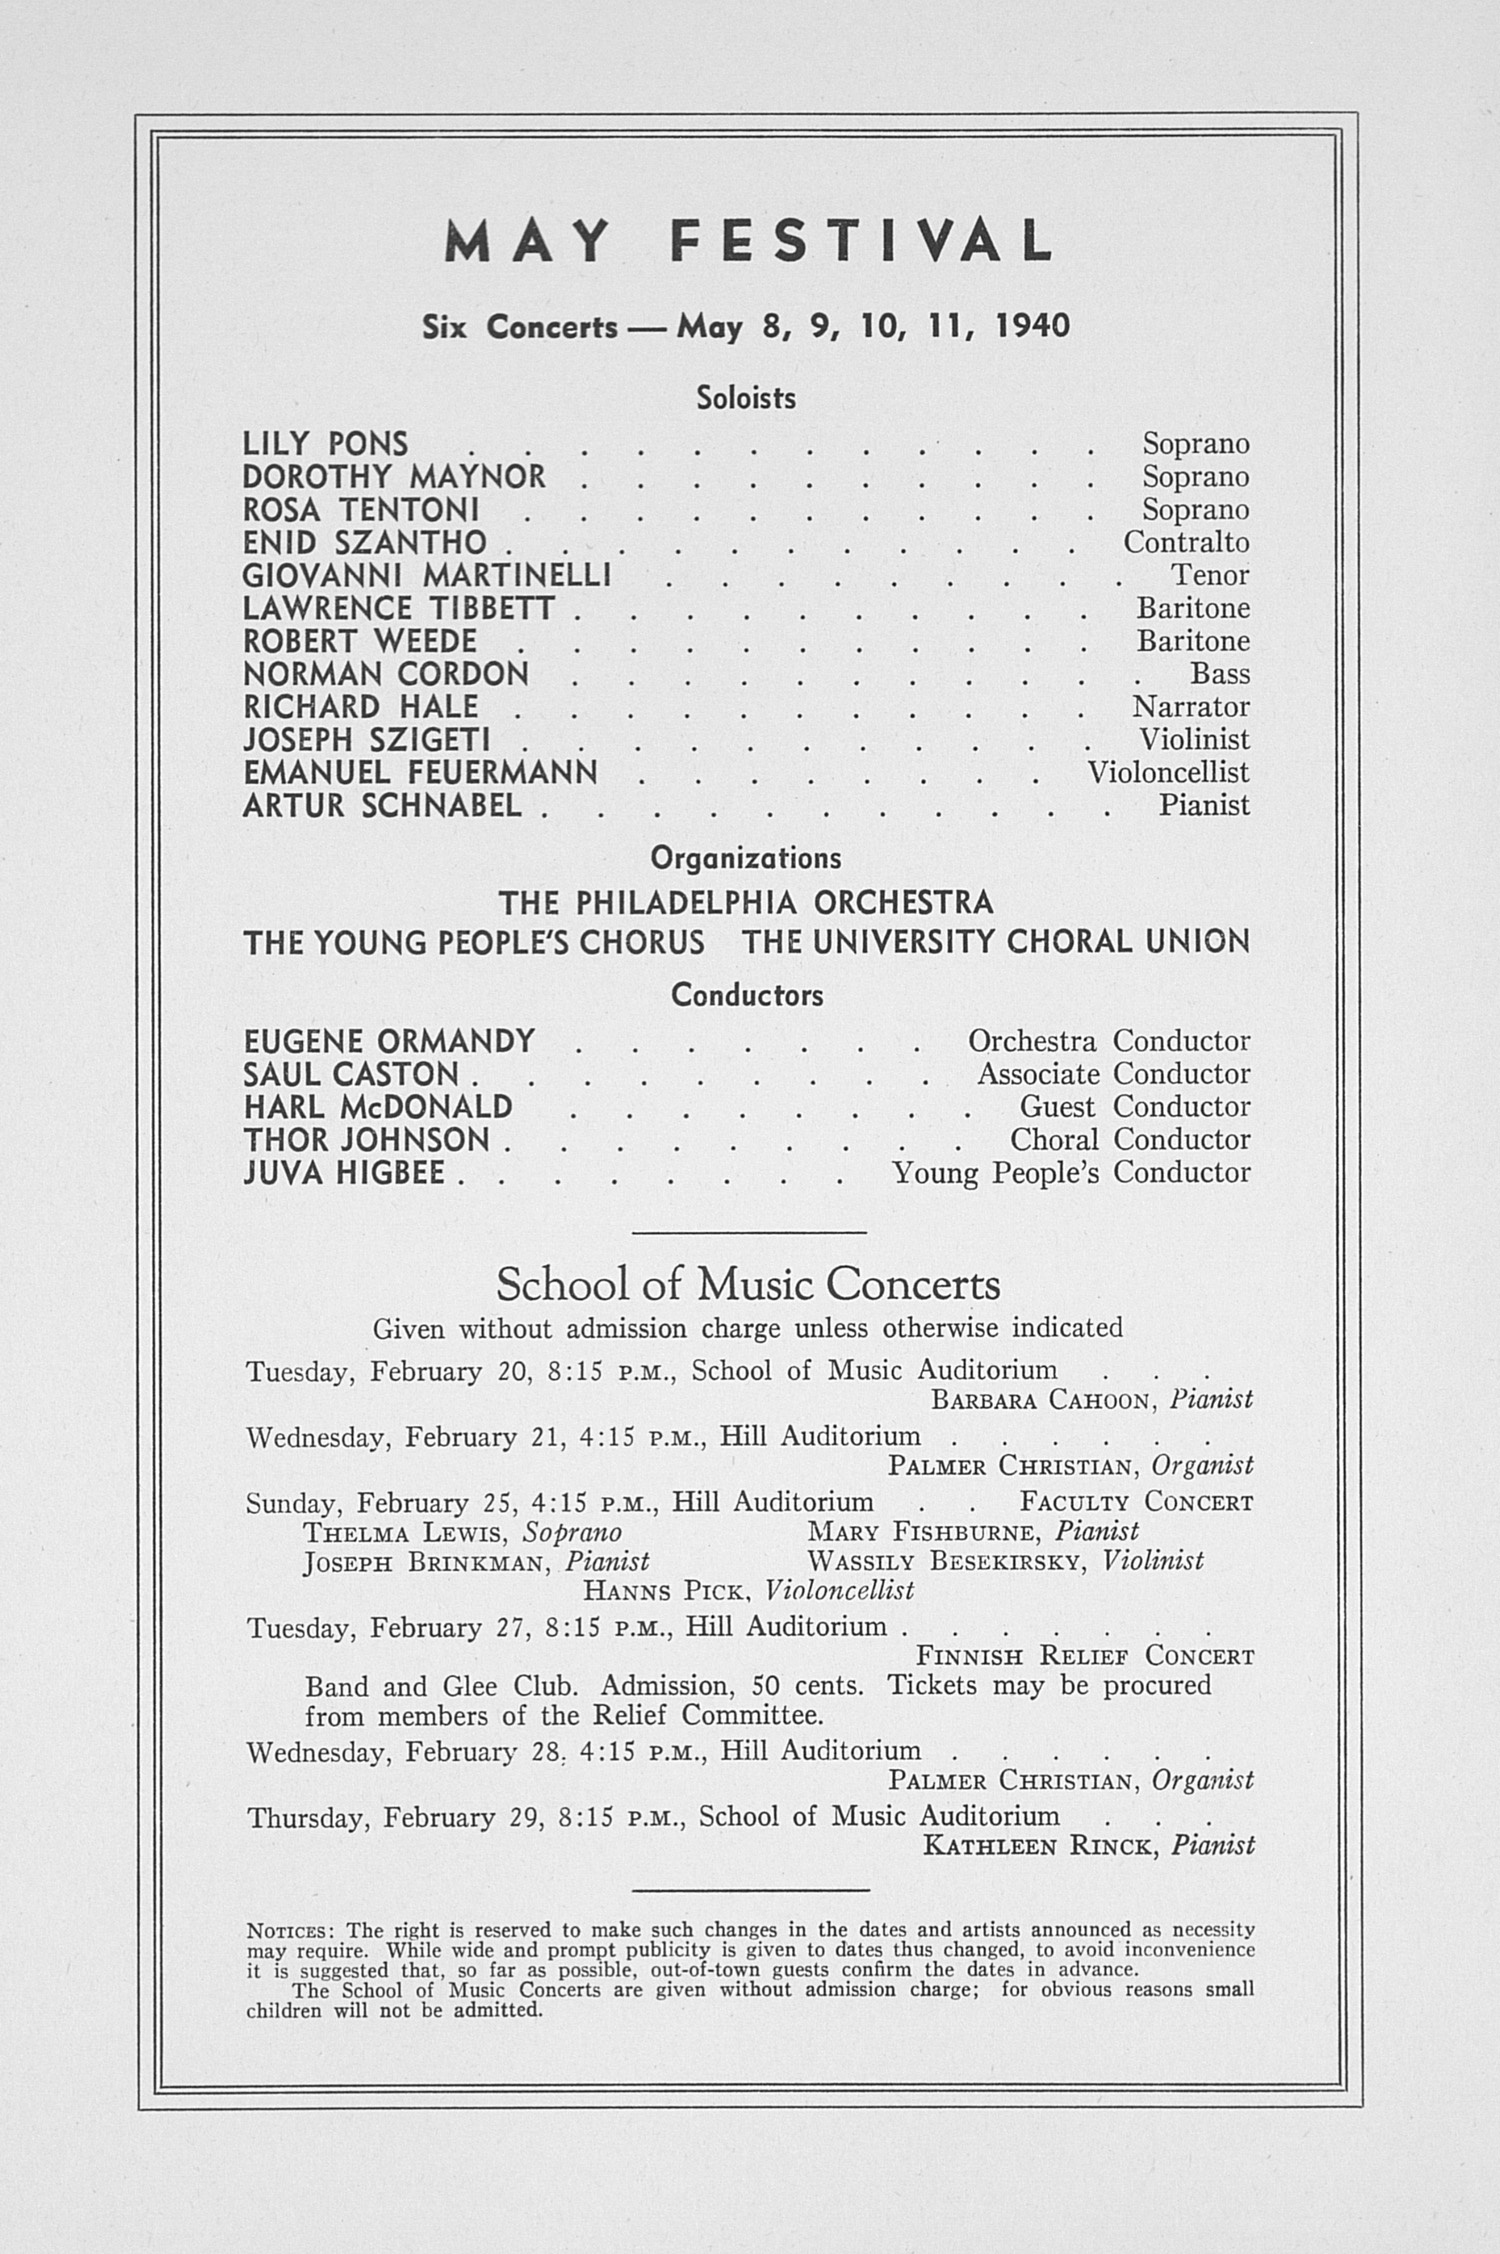 UMS Concert Program, February 14, 1940: Sixty-first Annual Choral Union Concert Series -- BartlettRobertson image